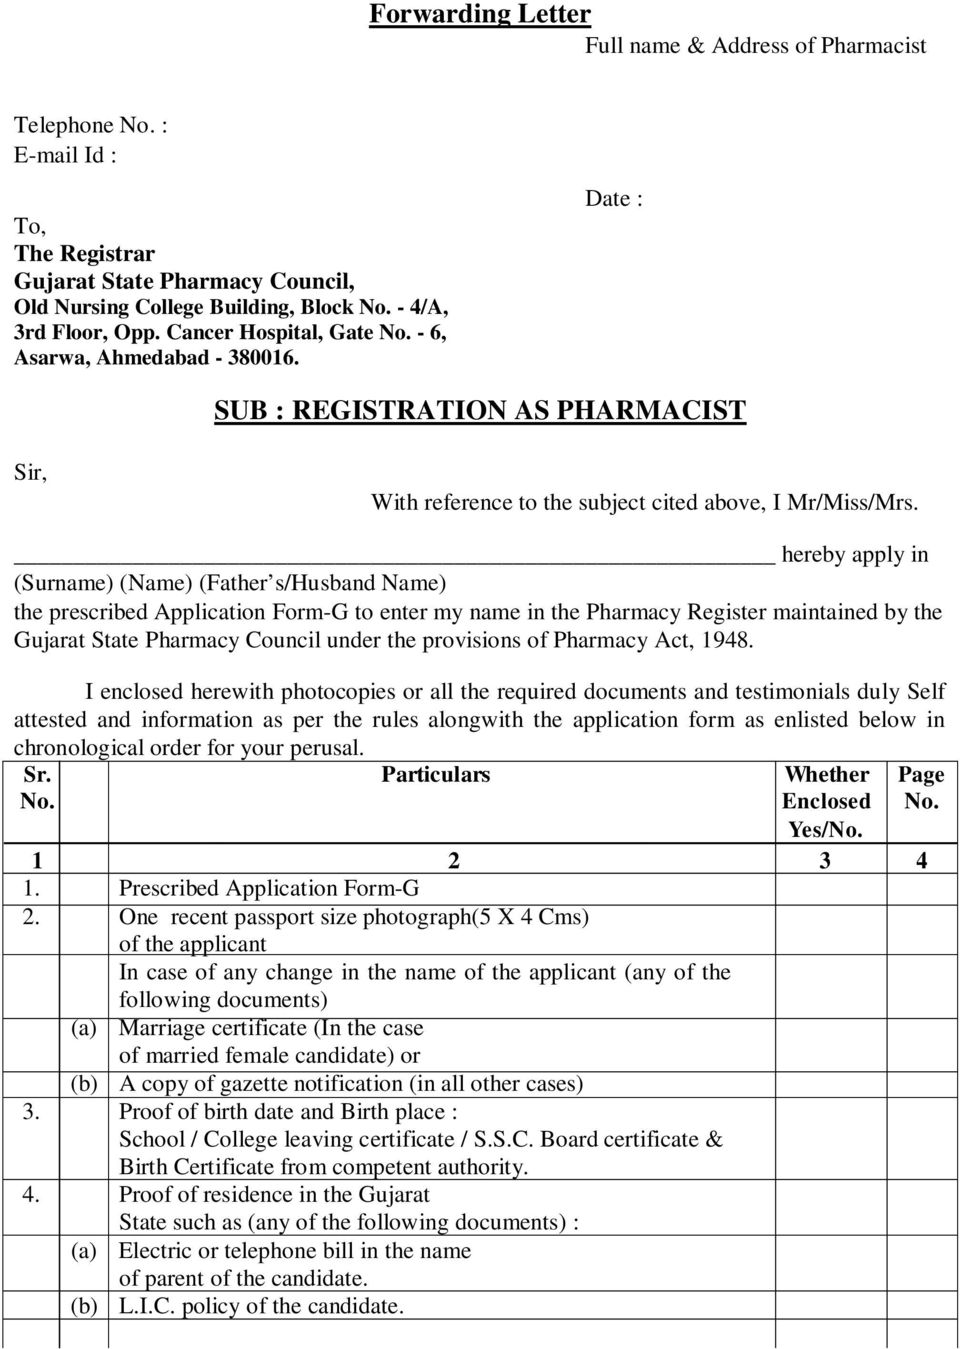 hereby apply in (Surname) (Name) (Father s/husband Name) the prescribed Application Form-G to enter my name in the Pharmacy Register maintained by the Gujarat State Pharmacy Council under the